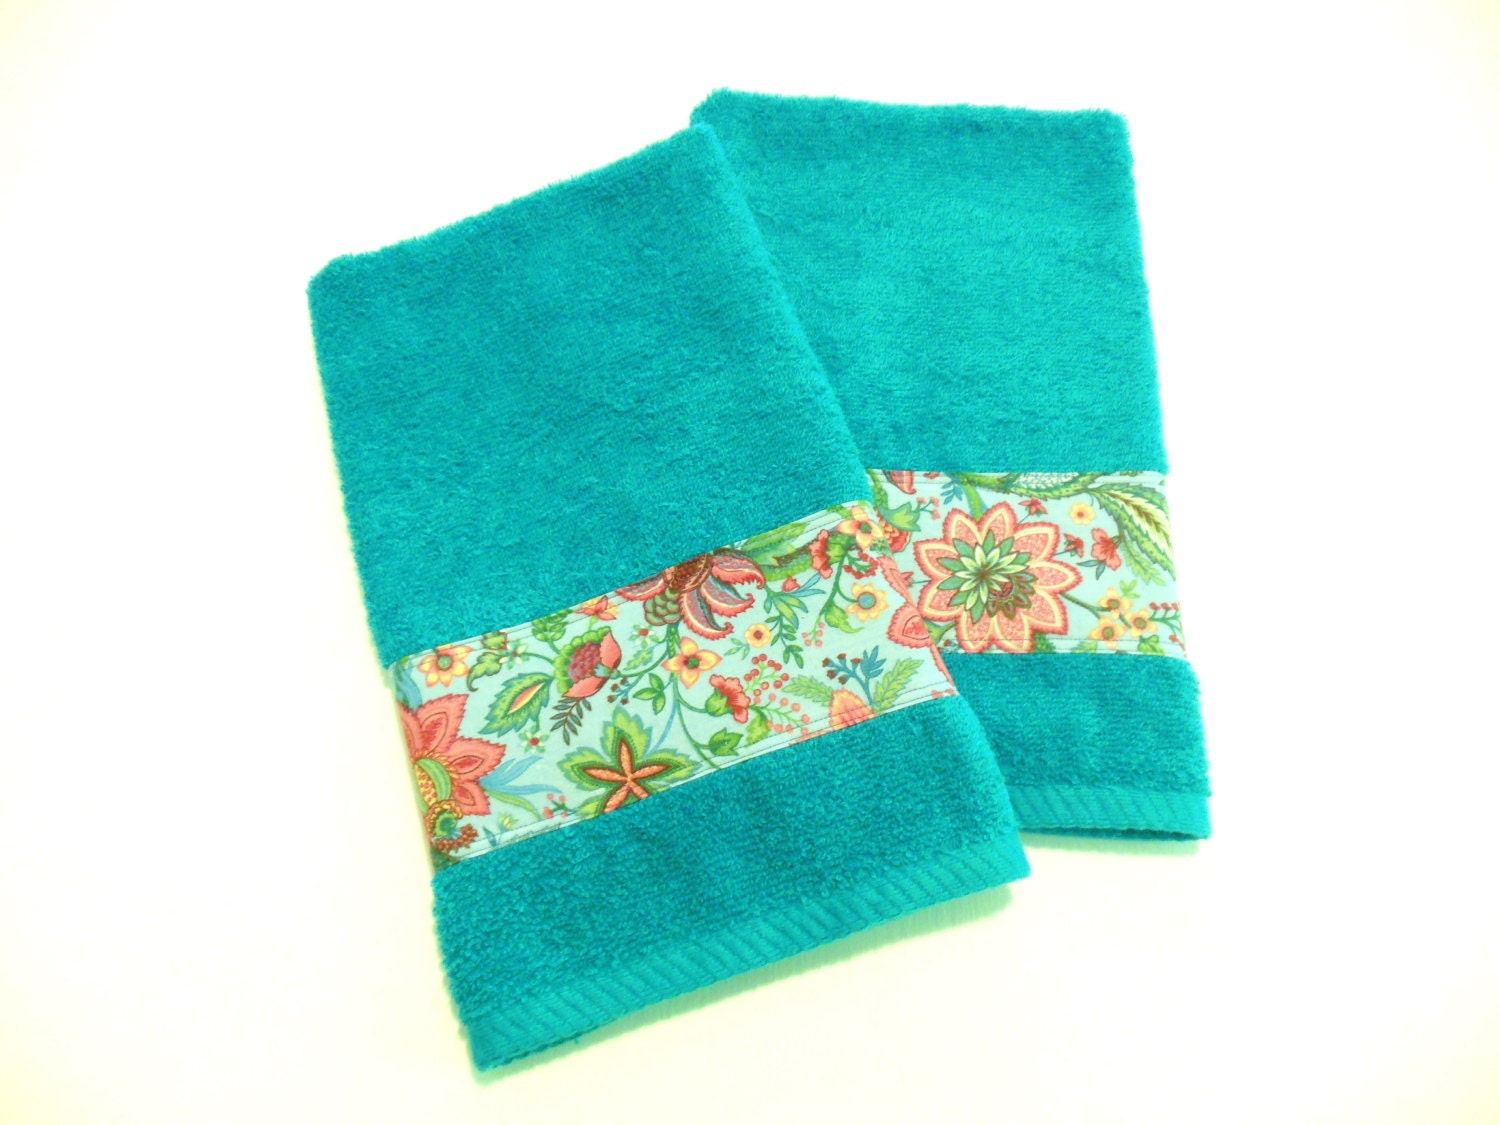 Teal Hand Towels Kitchen Or Bath Decorative Towels Set Of 2